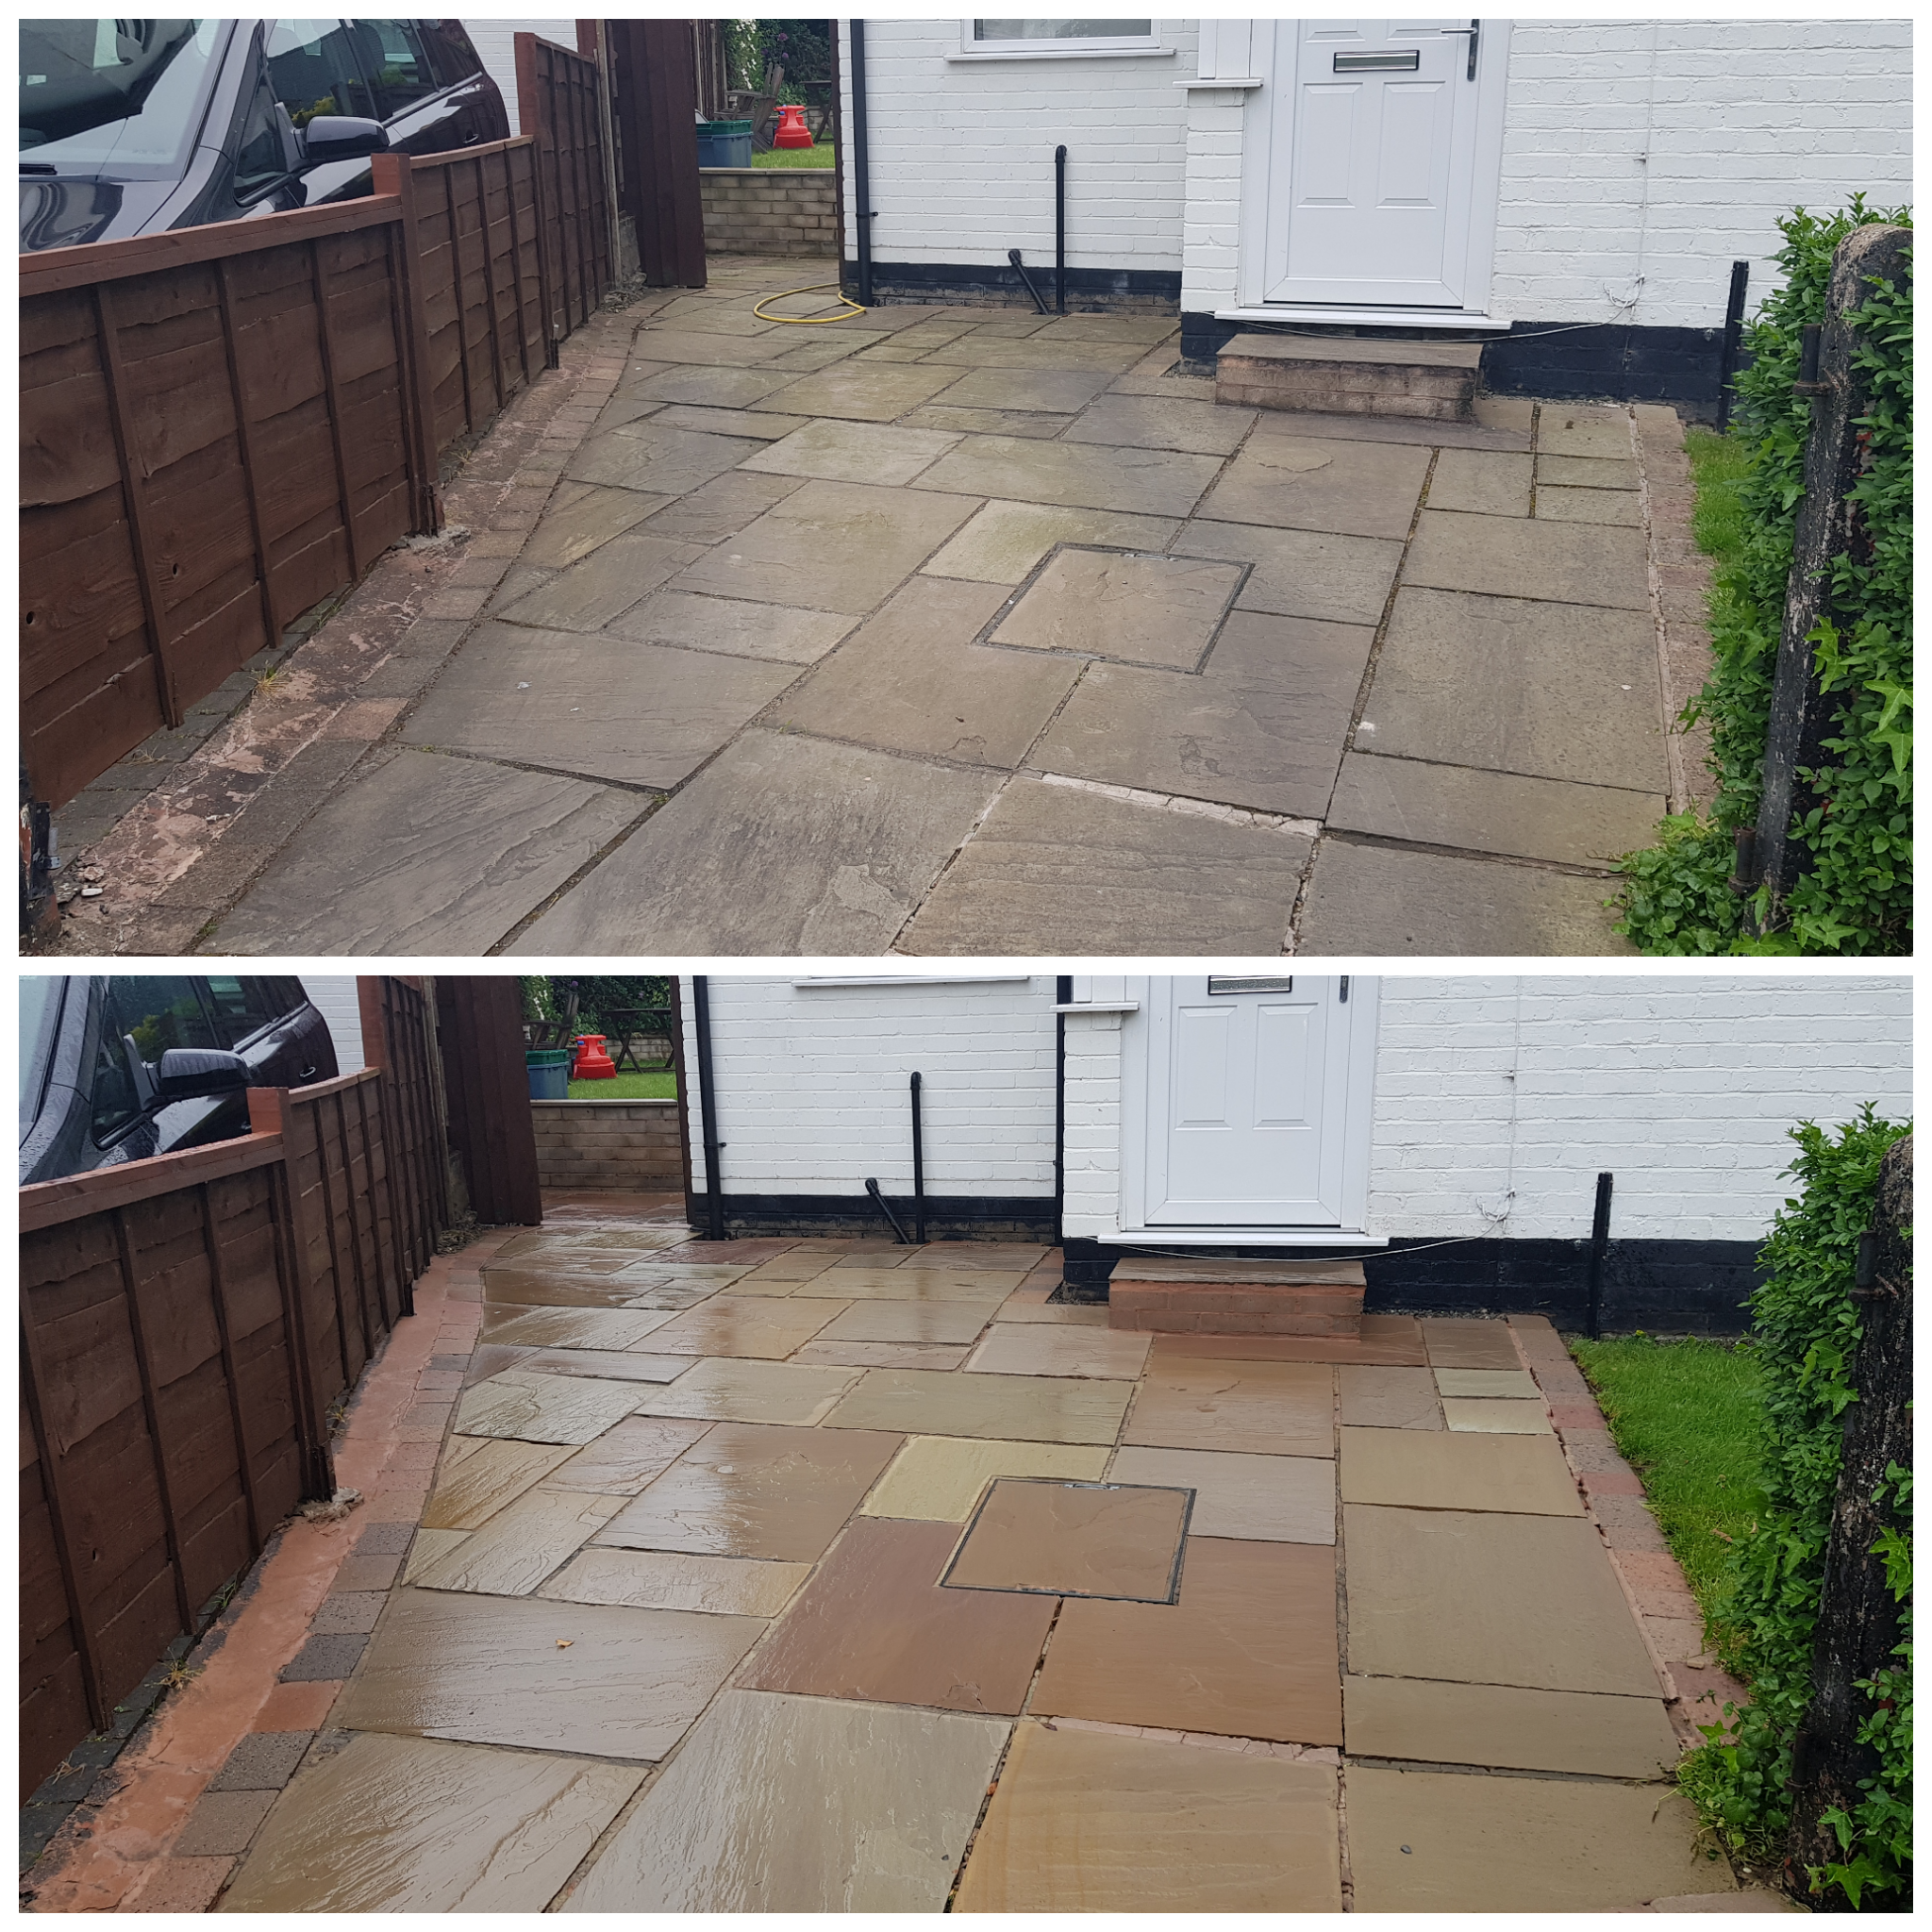 PicsArt_05-25-08.11.56 Indian Sandstone Driveway, Patio & Path Cleaning - Little Neston, Cheshire